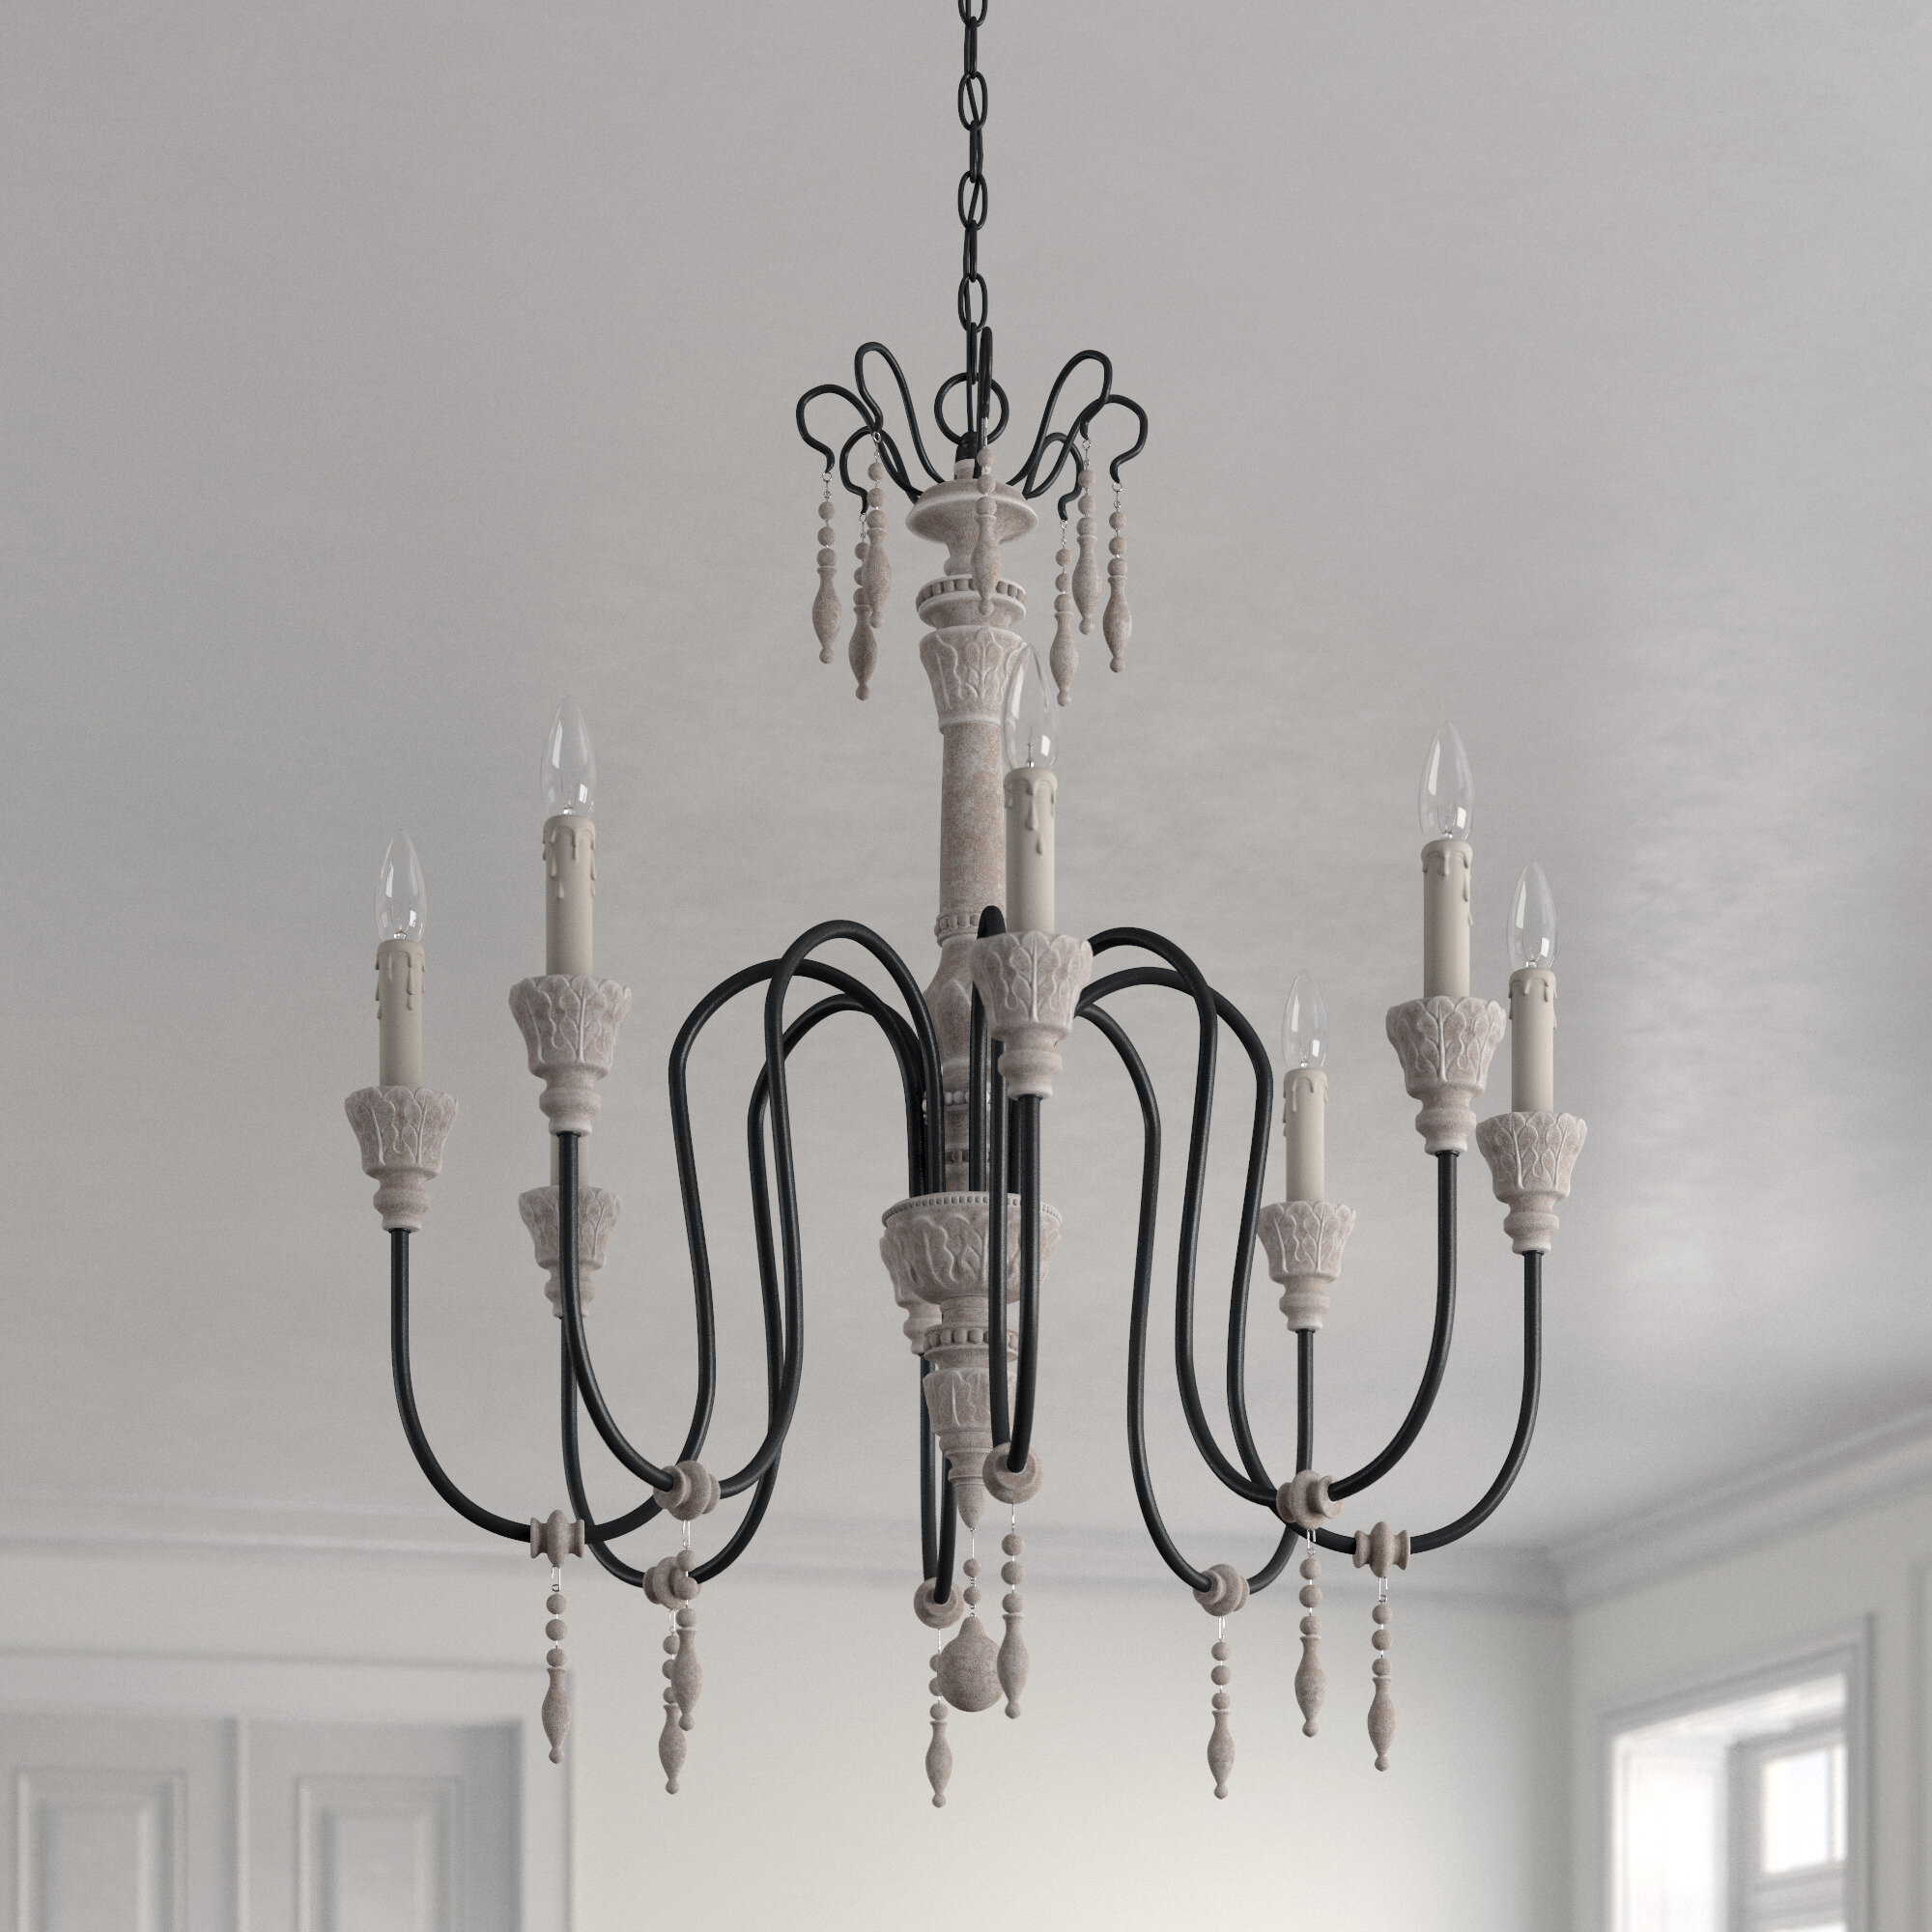 Ophelia Co Ailsa 8 Light Candle Style Classic Chandelier With Beaded Accents Reviews Wayfair